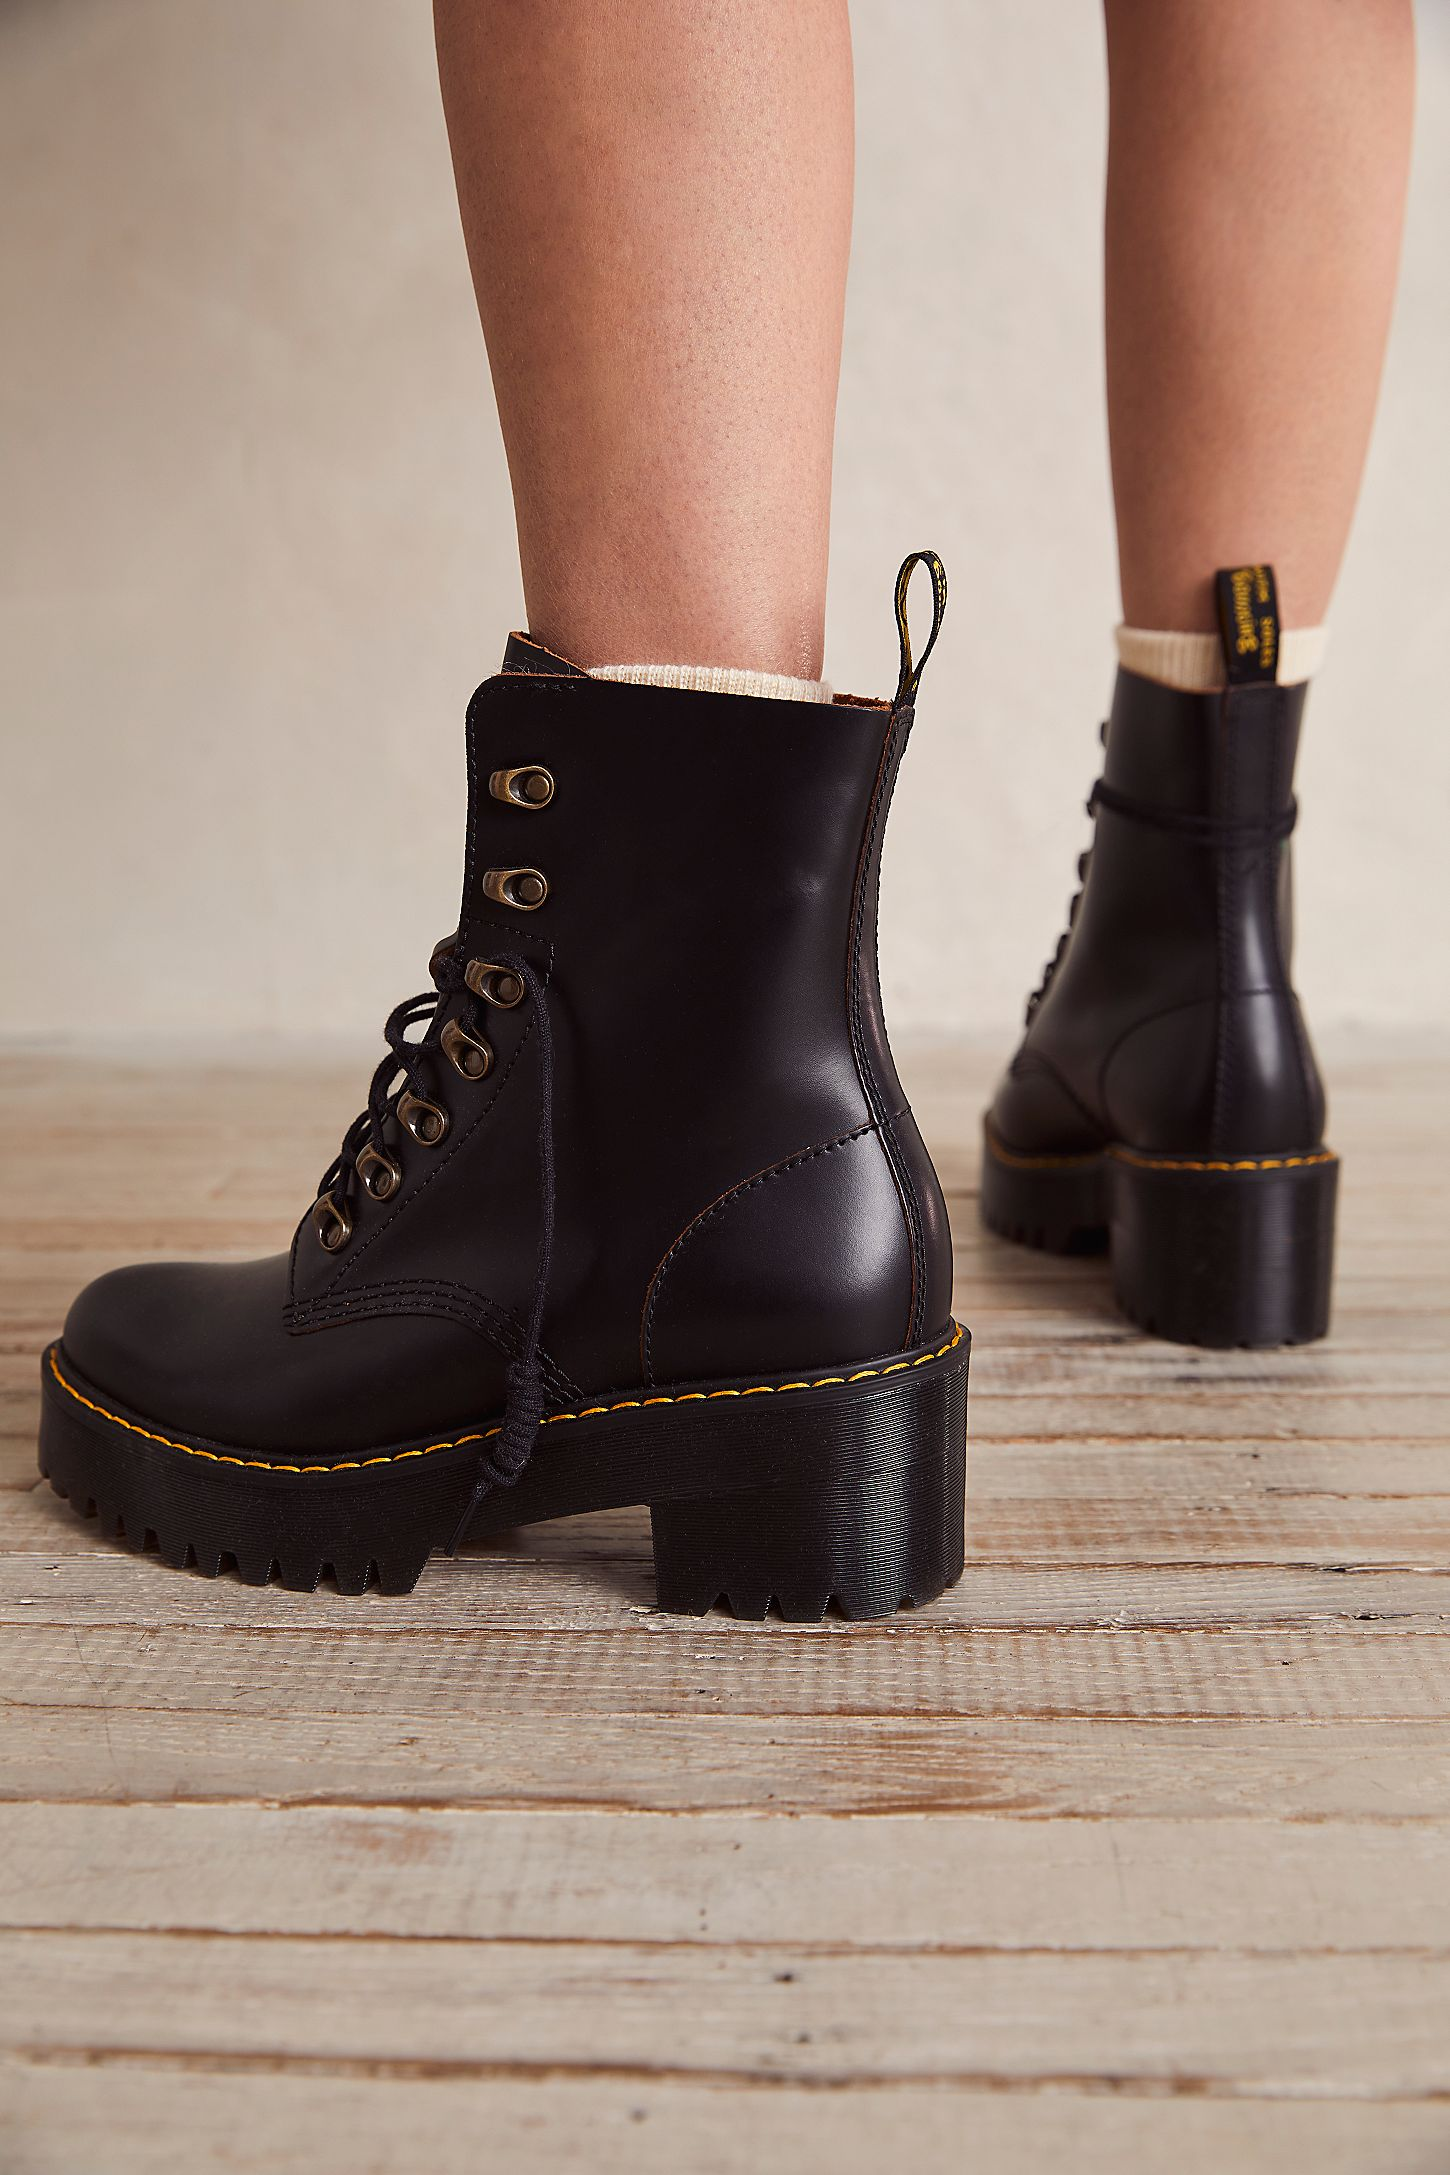 Dr Martens Leona Platform Ankle Boot Free People Boots Slide View 4